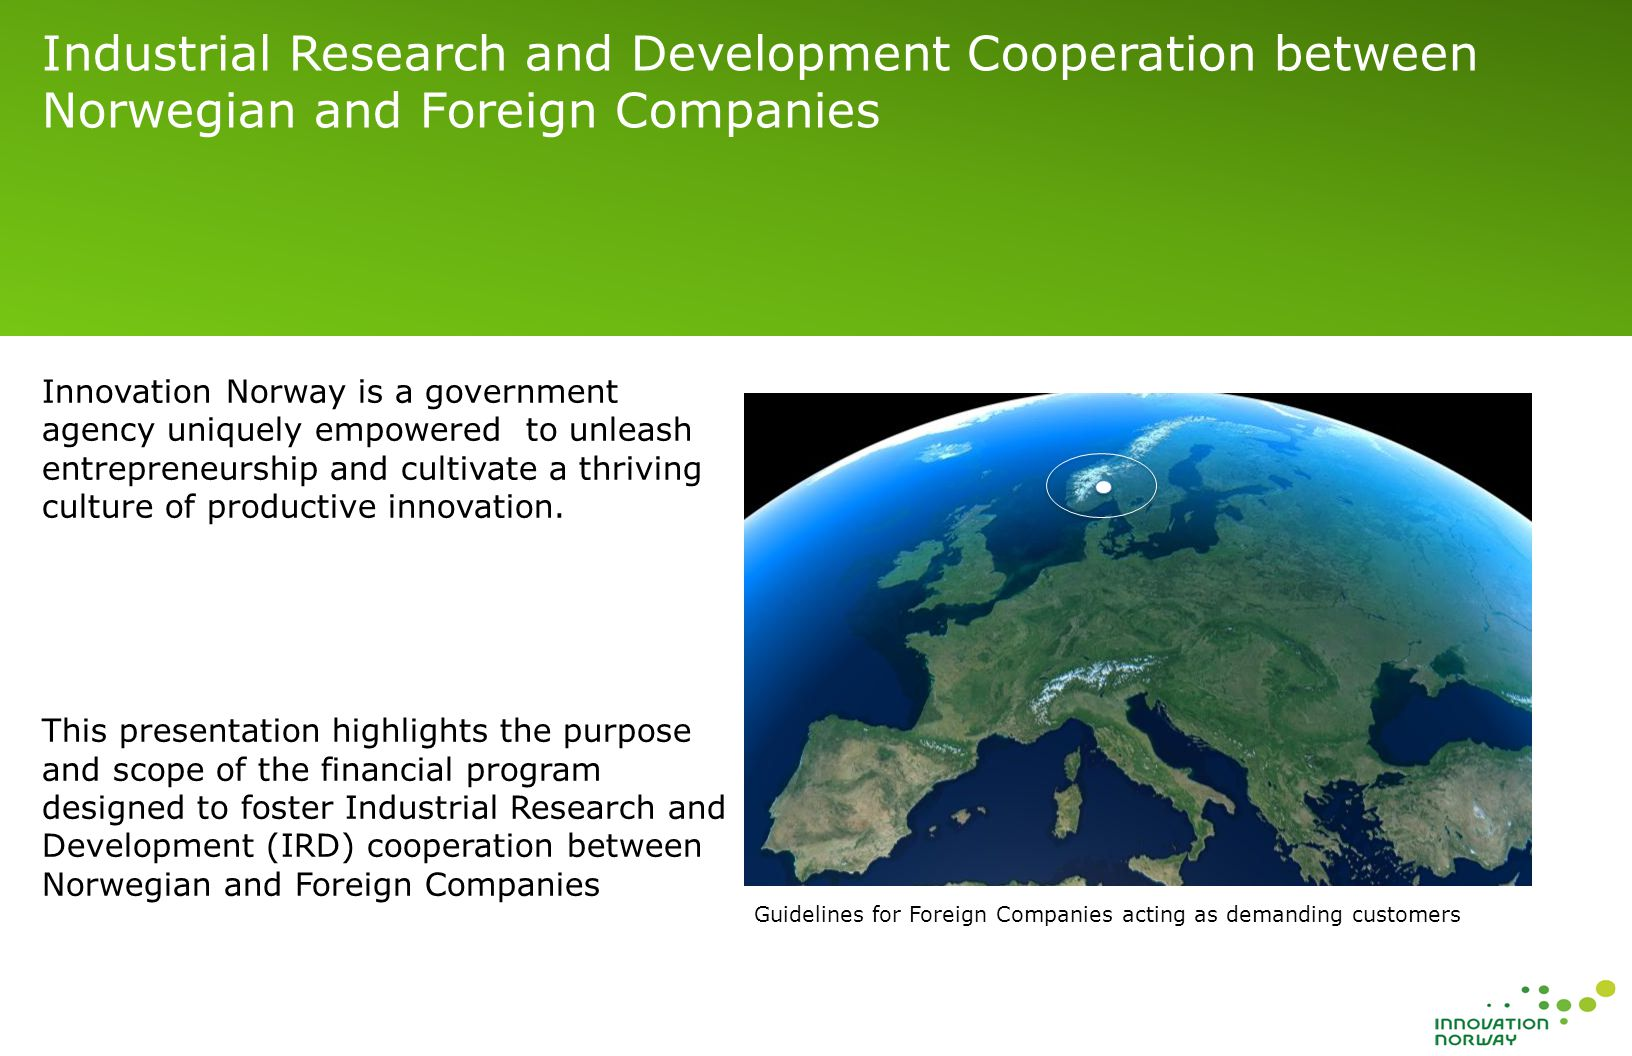 Industrial Research and Development Cooperation between Norwegian and Foreign Companies Guidelines for Foreign Companies acting as demanding customers Innovation Norway is a government agency uniquely empowered to unleash entrepreneurship and cultivate a thriving culture of productive innovation.